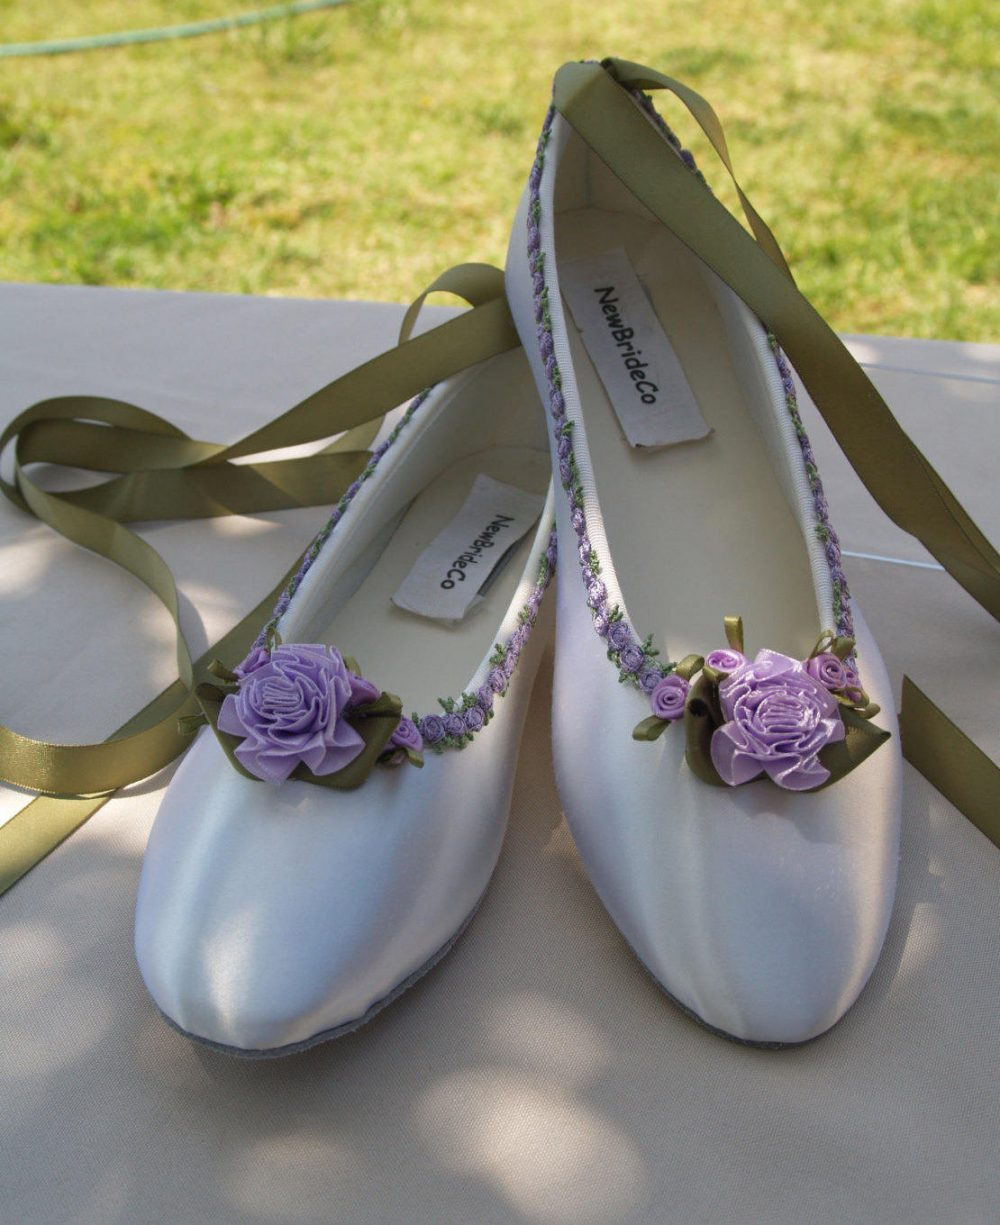 Fairy Tale Wedding Flats Lavender Flower Trim Green Lavender, Ivory Or White Ballet Style Slipper Style Lace Up Ribbon Style, Touch Lavender